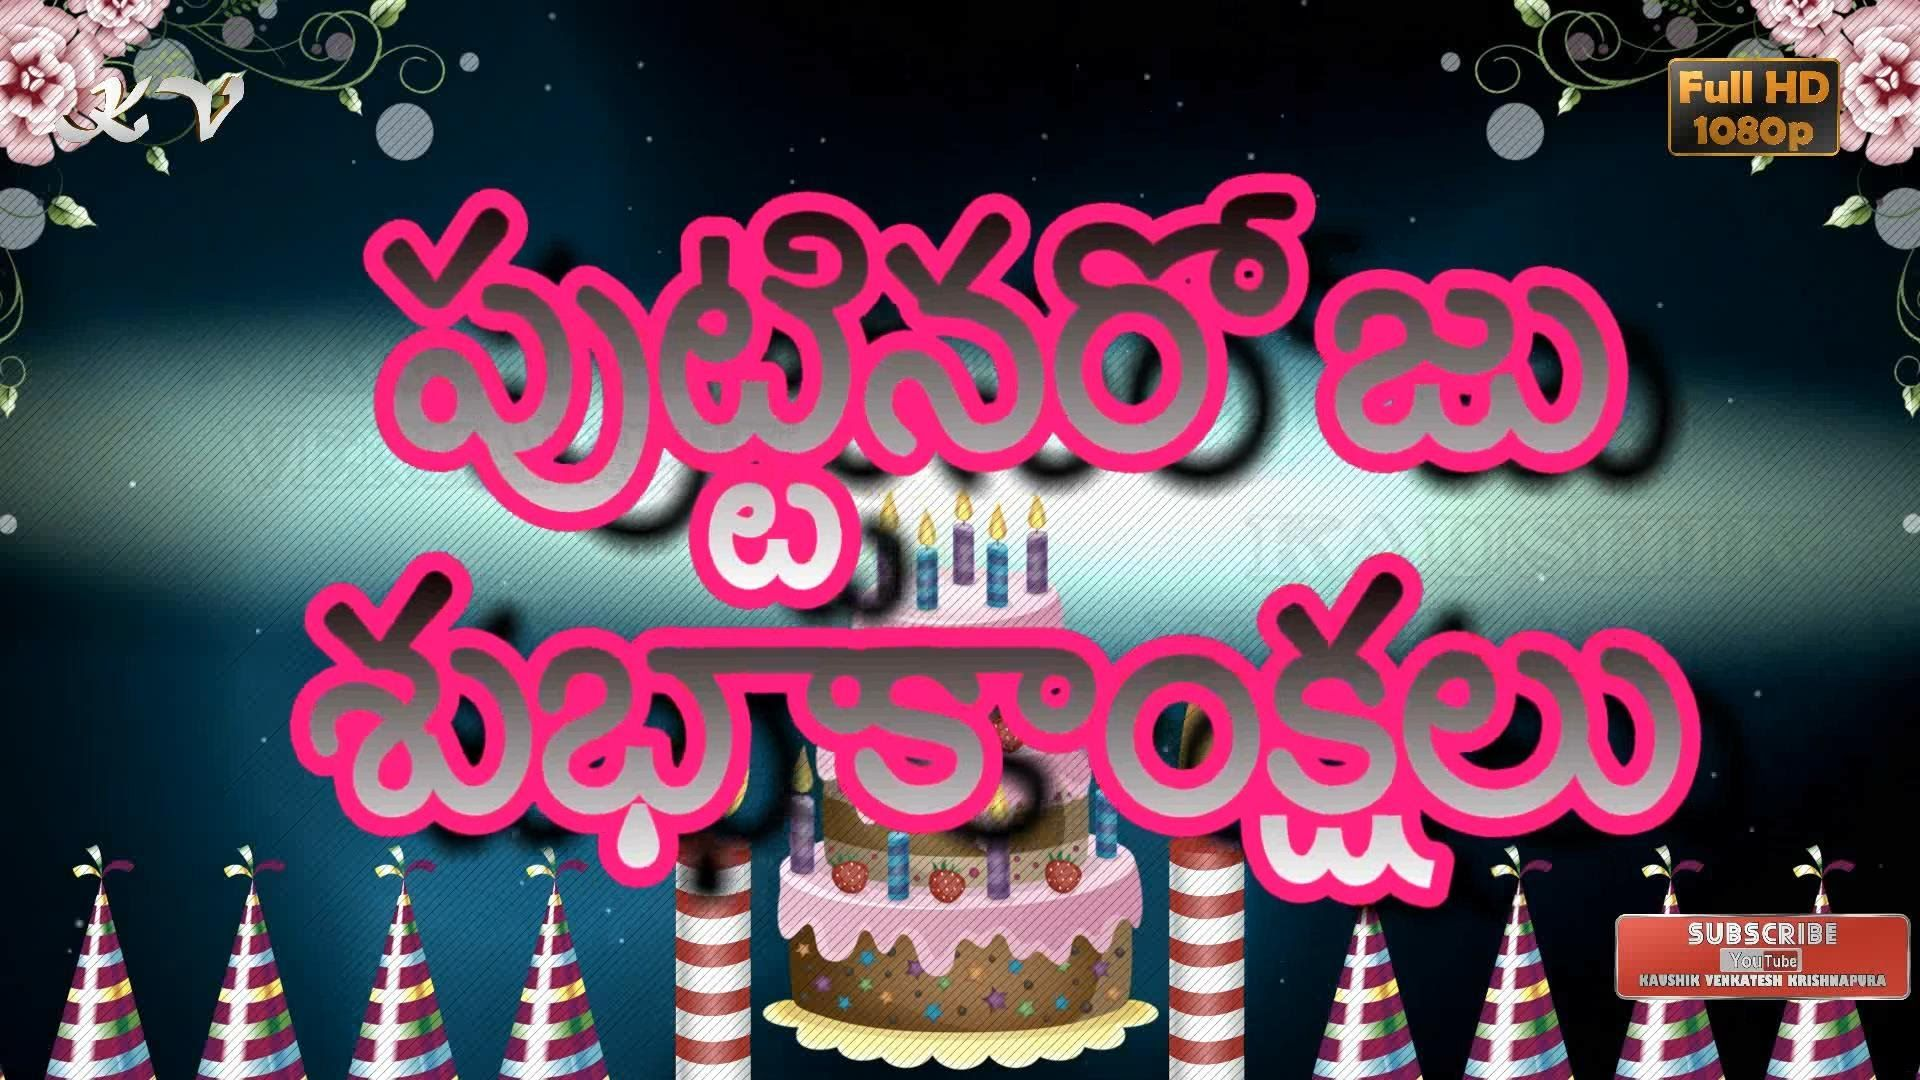 Telugu Birthday Video Greetings, Happy Birthday Wishes in